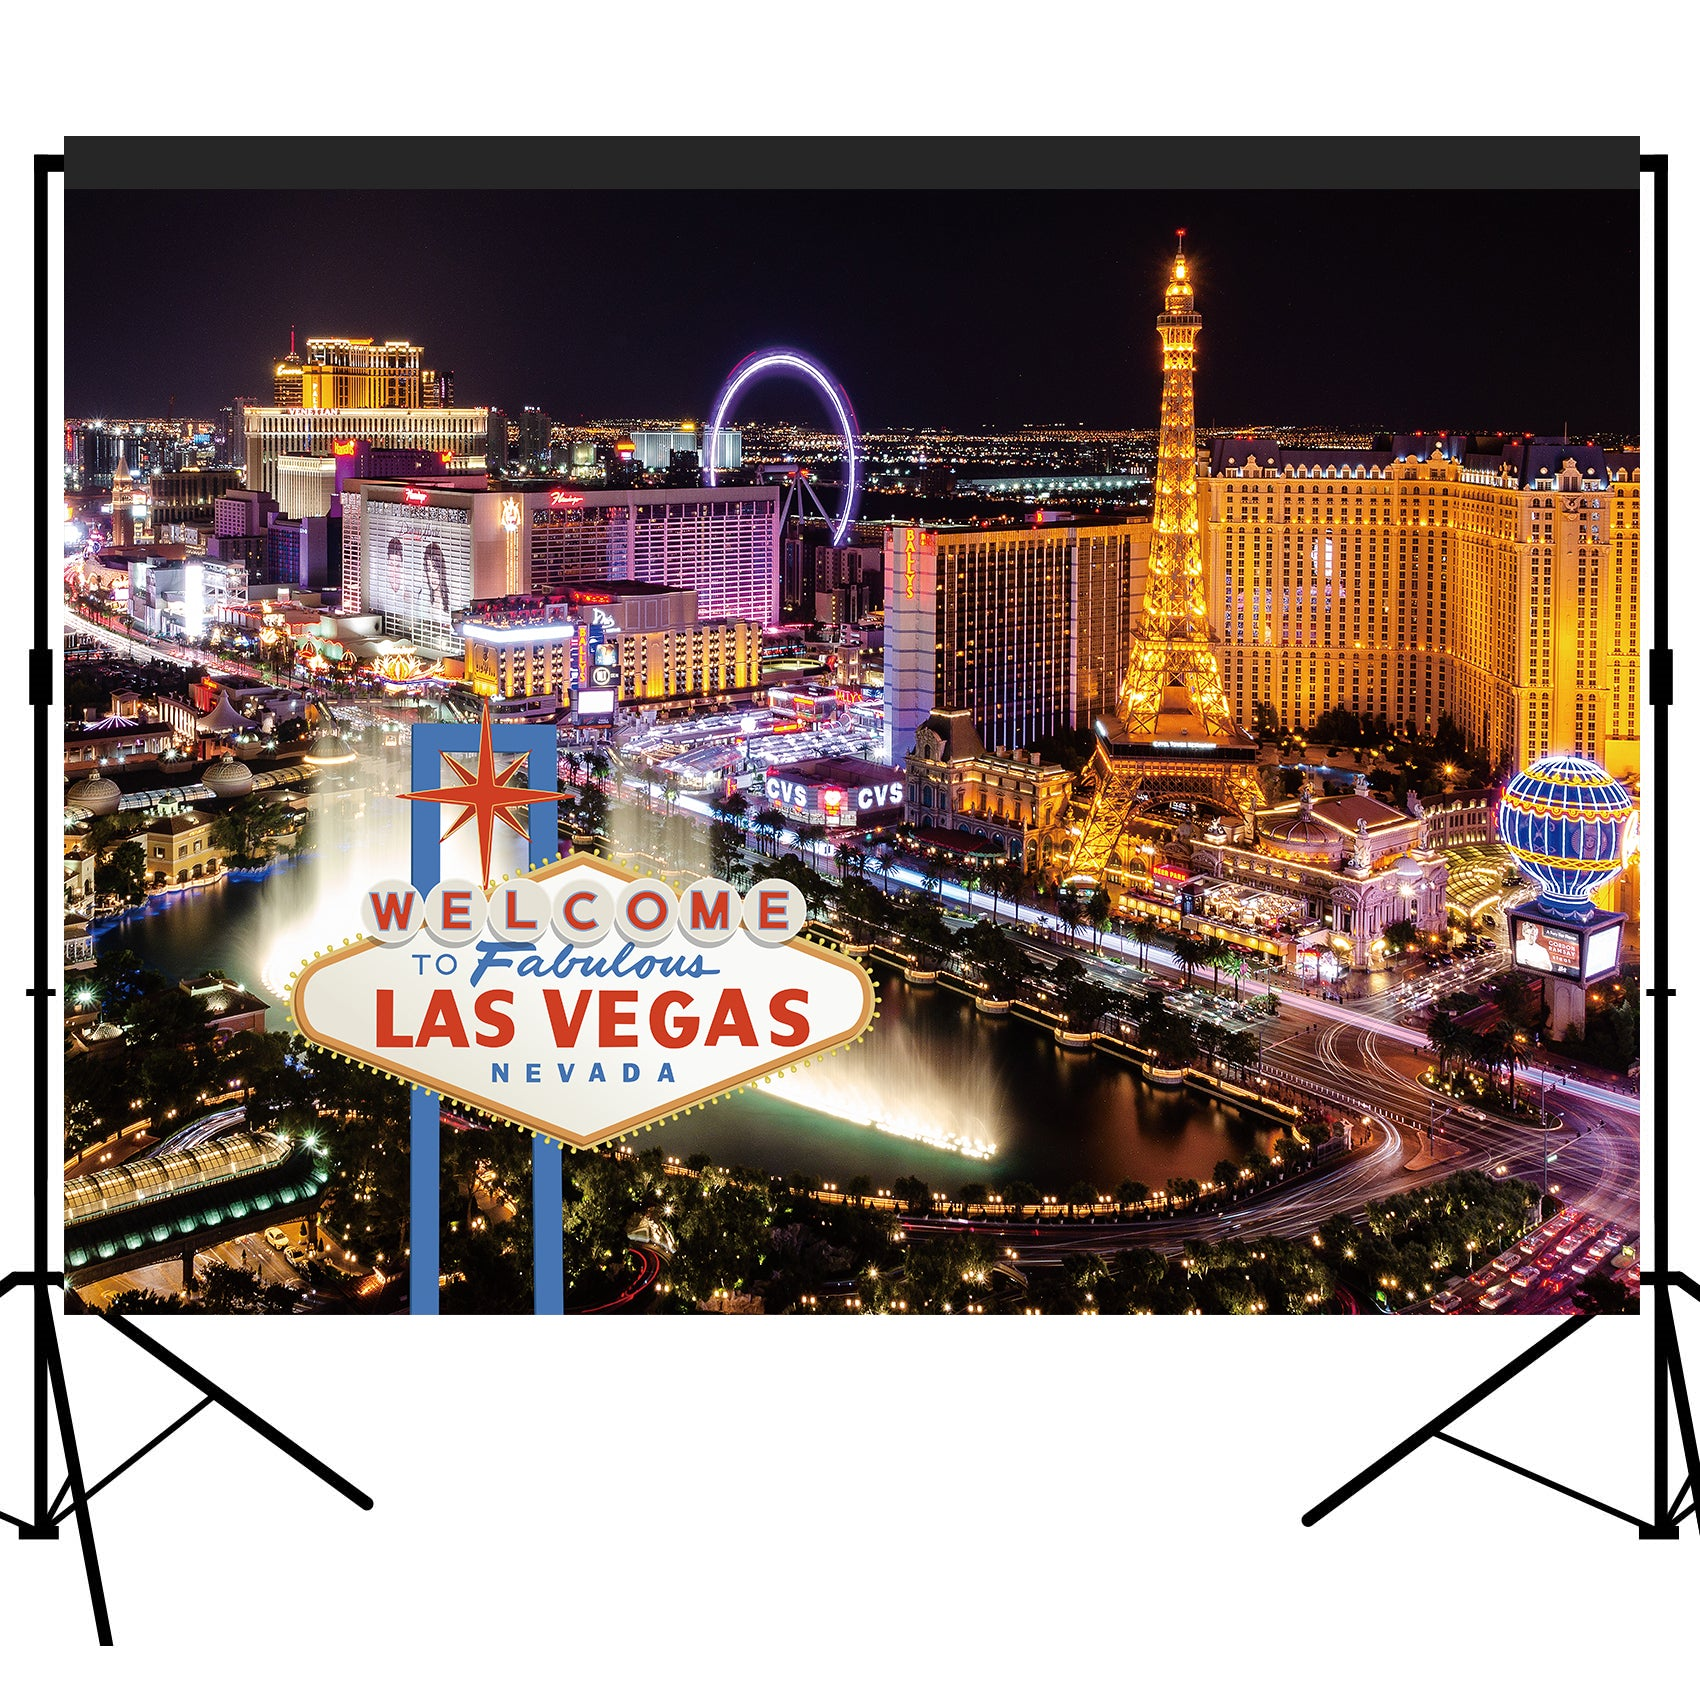 Welcome to Las Vegas Casino Night Backdrop 7x5 feet